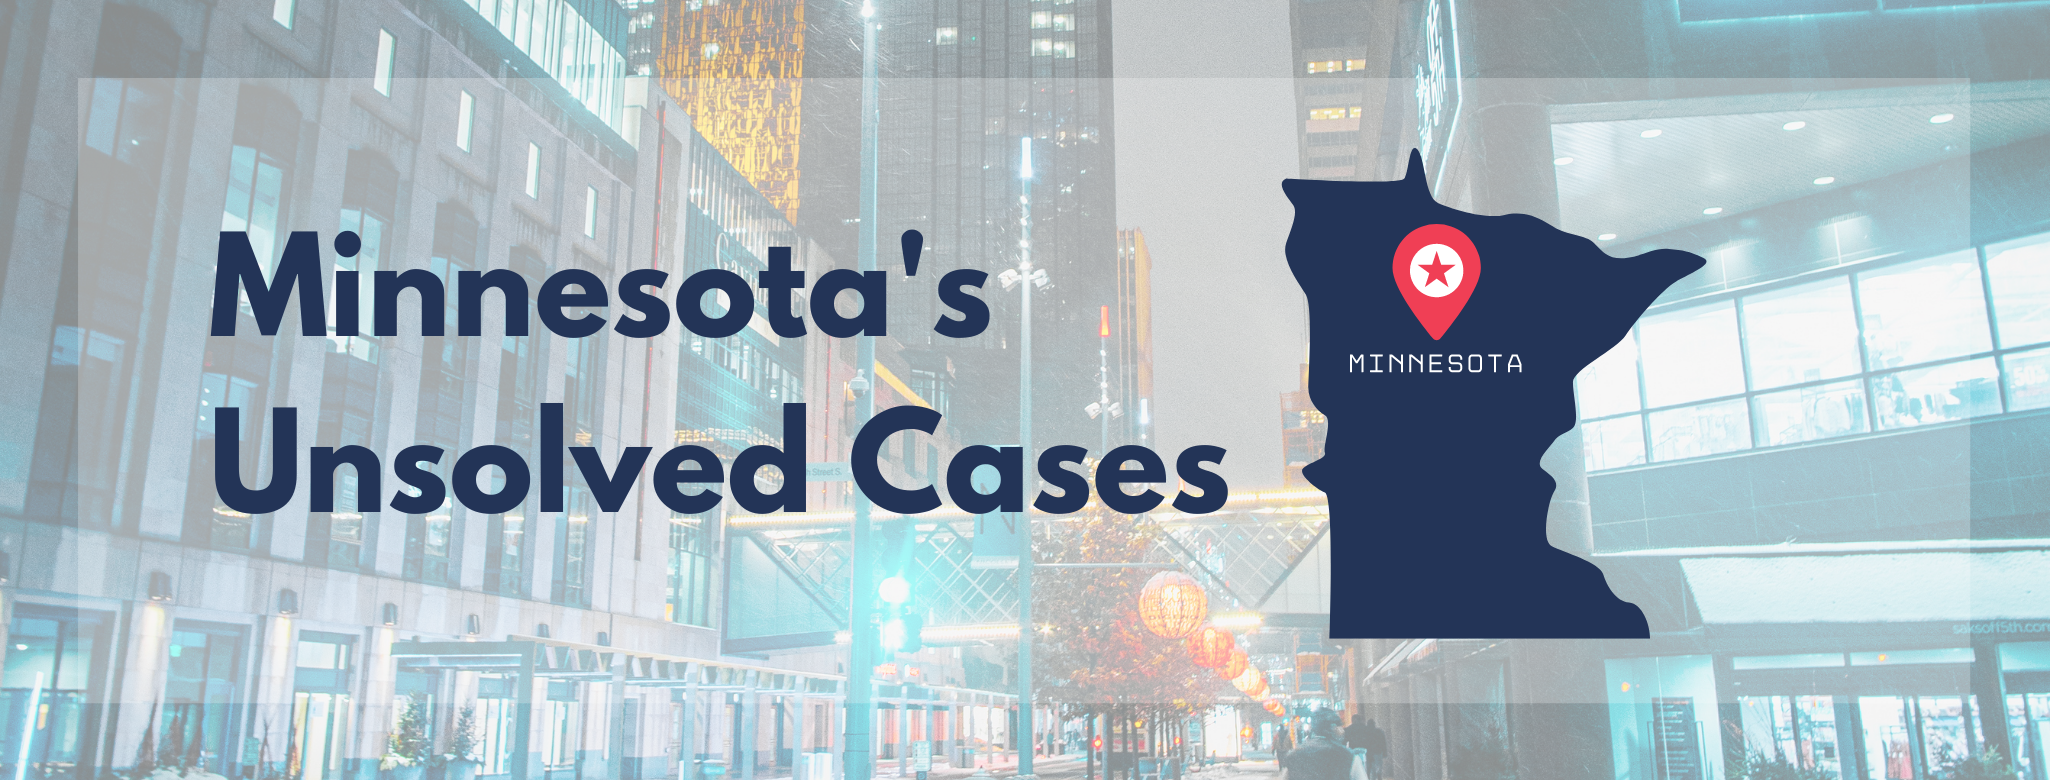 Minnesota's Unsolved Missing Person and Homicide Cases